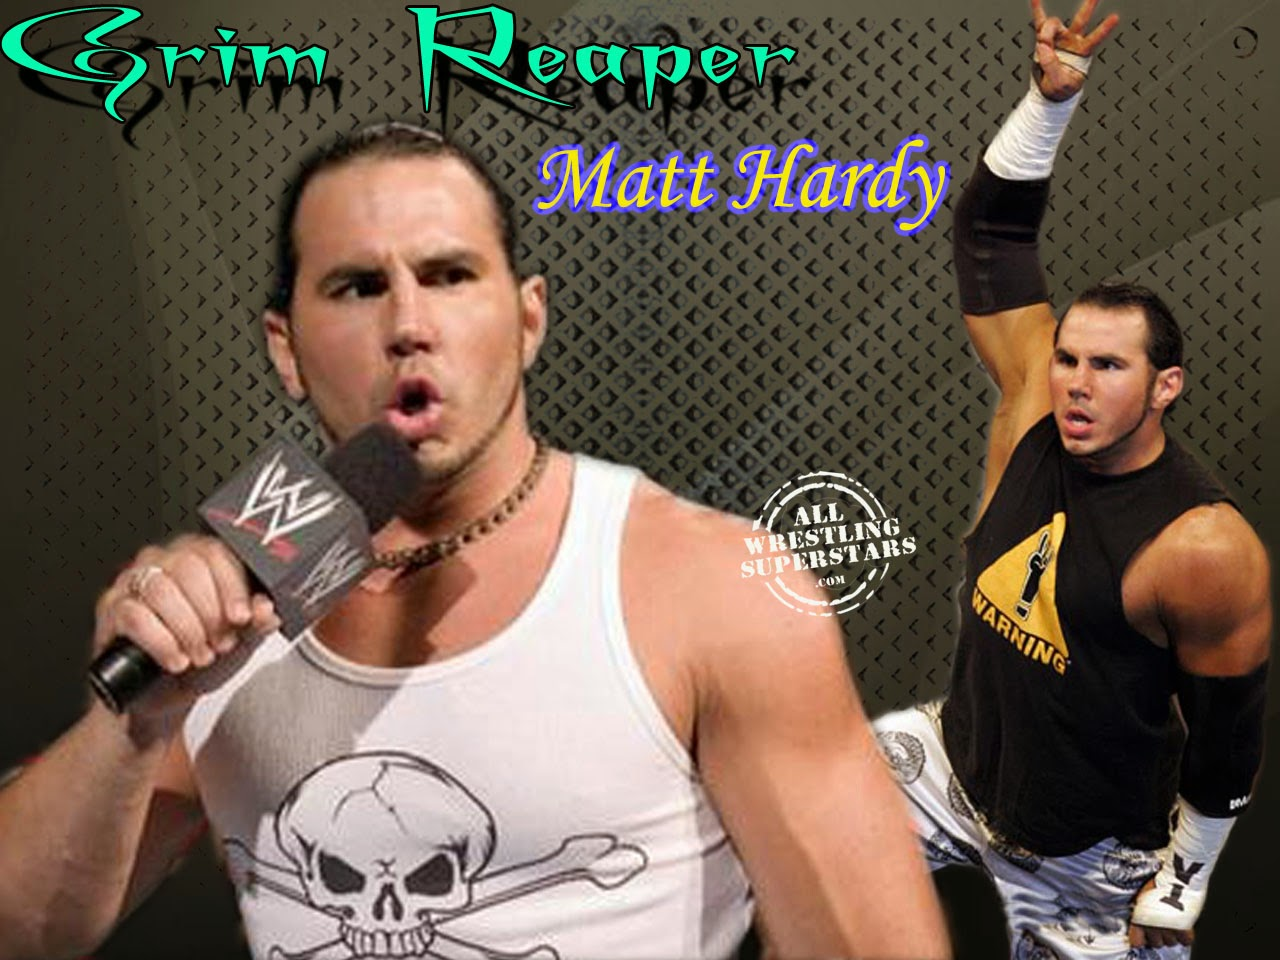 Wwe Super Star Matt Hardy Wallpapers - Welcome To Wallpaperz and games